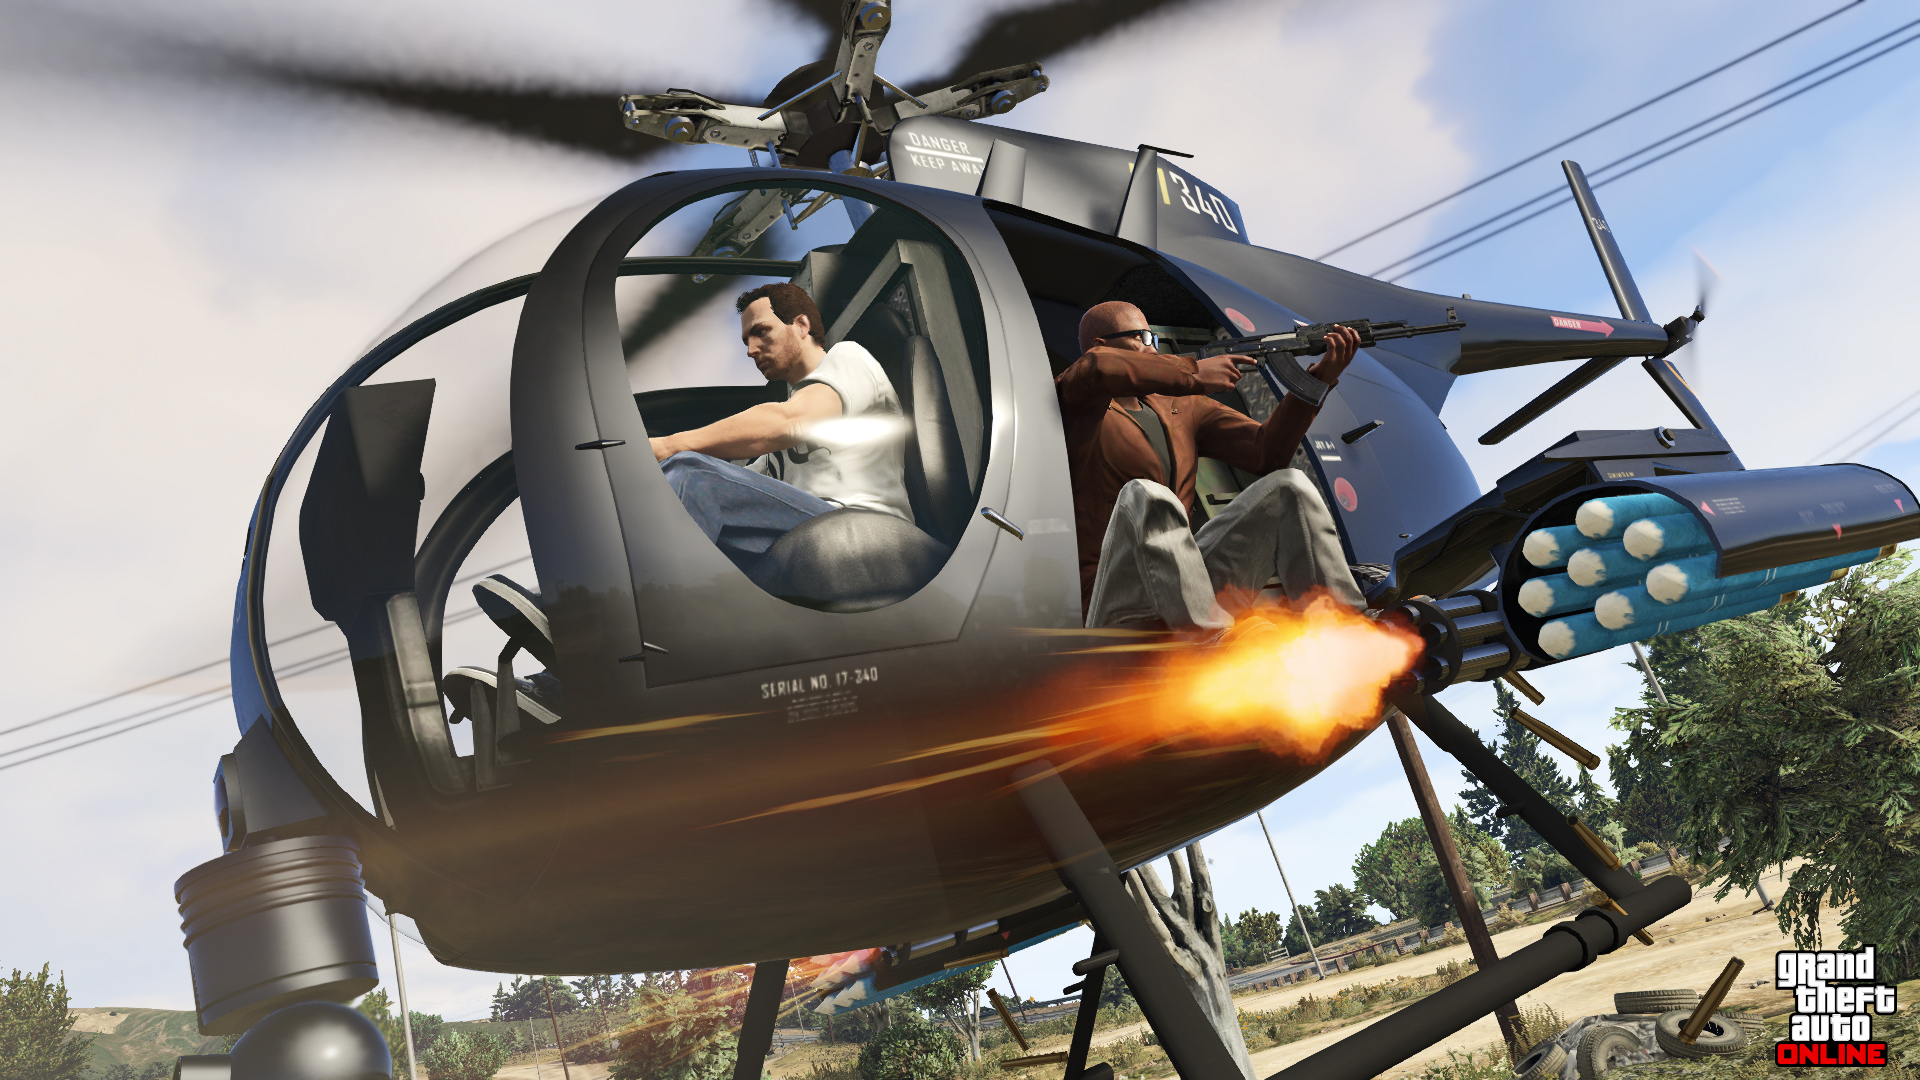 Grand Theft Auto V on PS4/Xbox One: A List of New Songs